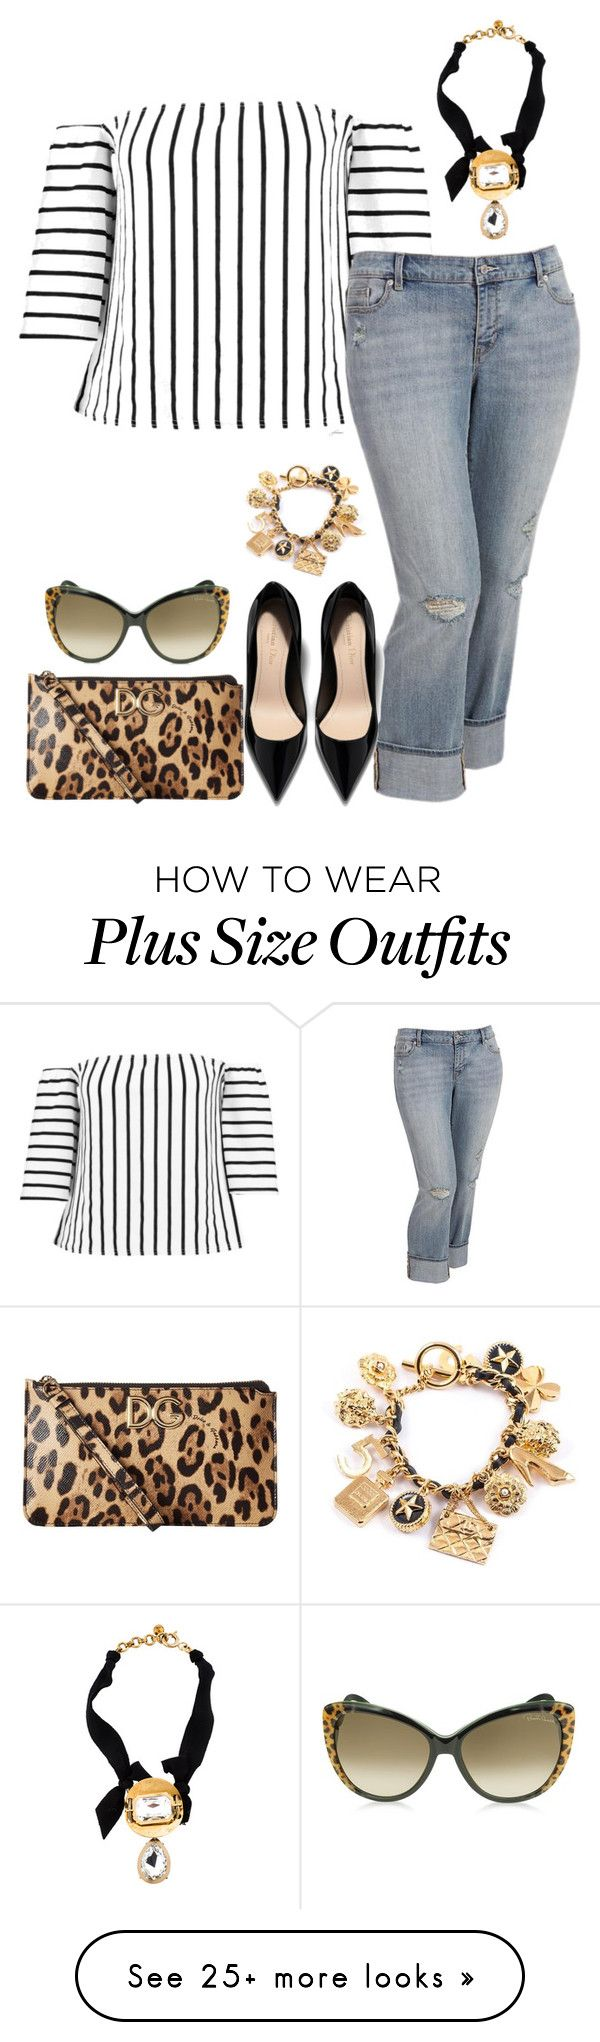 """Big girl hot- plus size"" by gchamama on Polyvore featuring Boohoo, Old Navy, Dolce&Gabbana, Roberto Cavalli, Chanel and Lanvin"